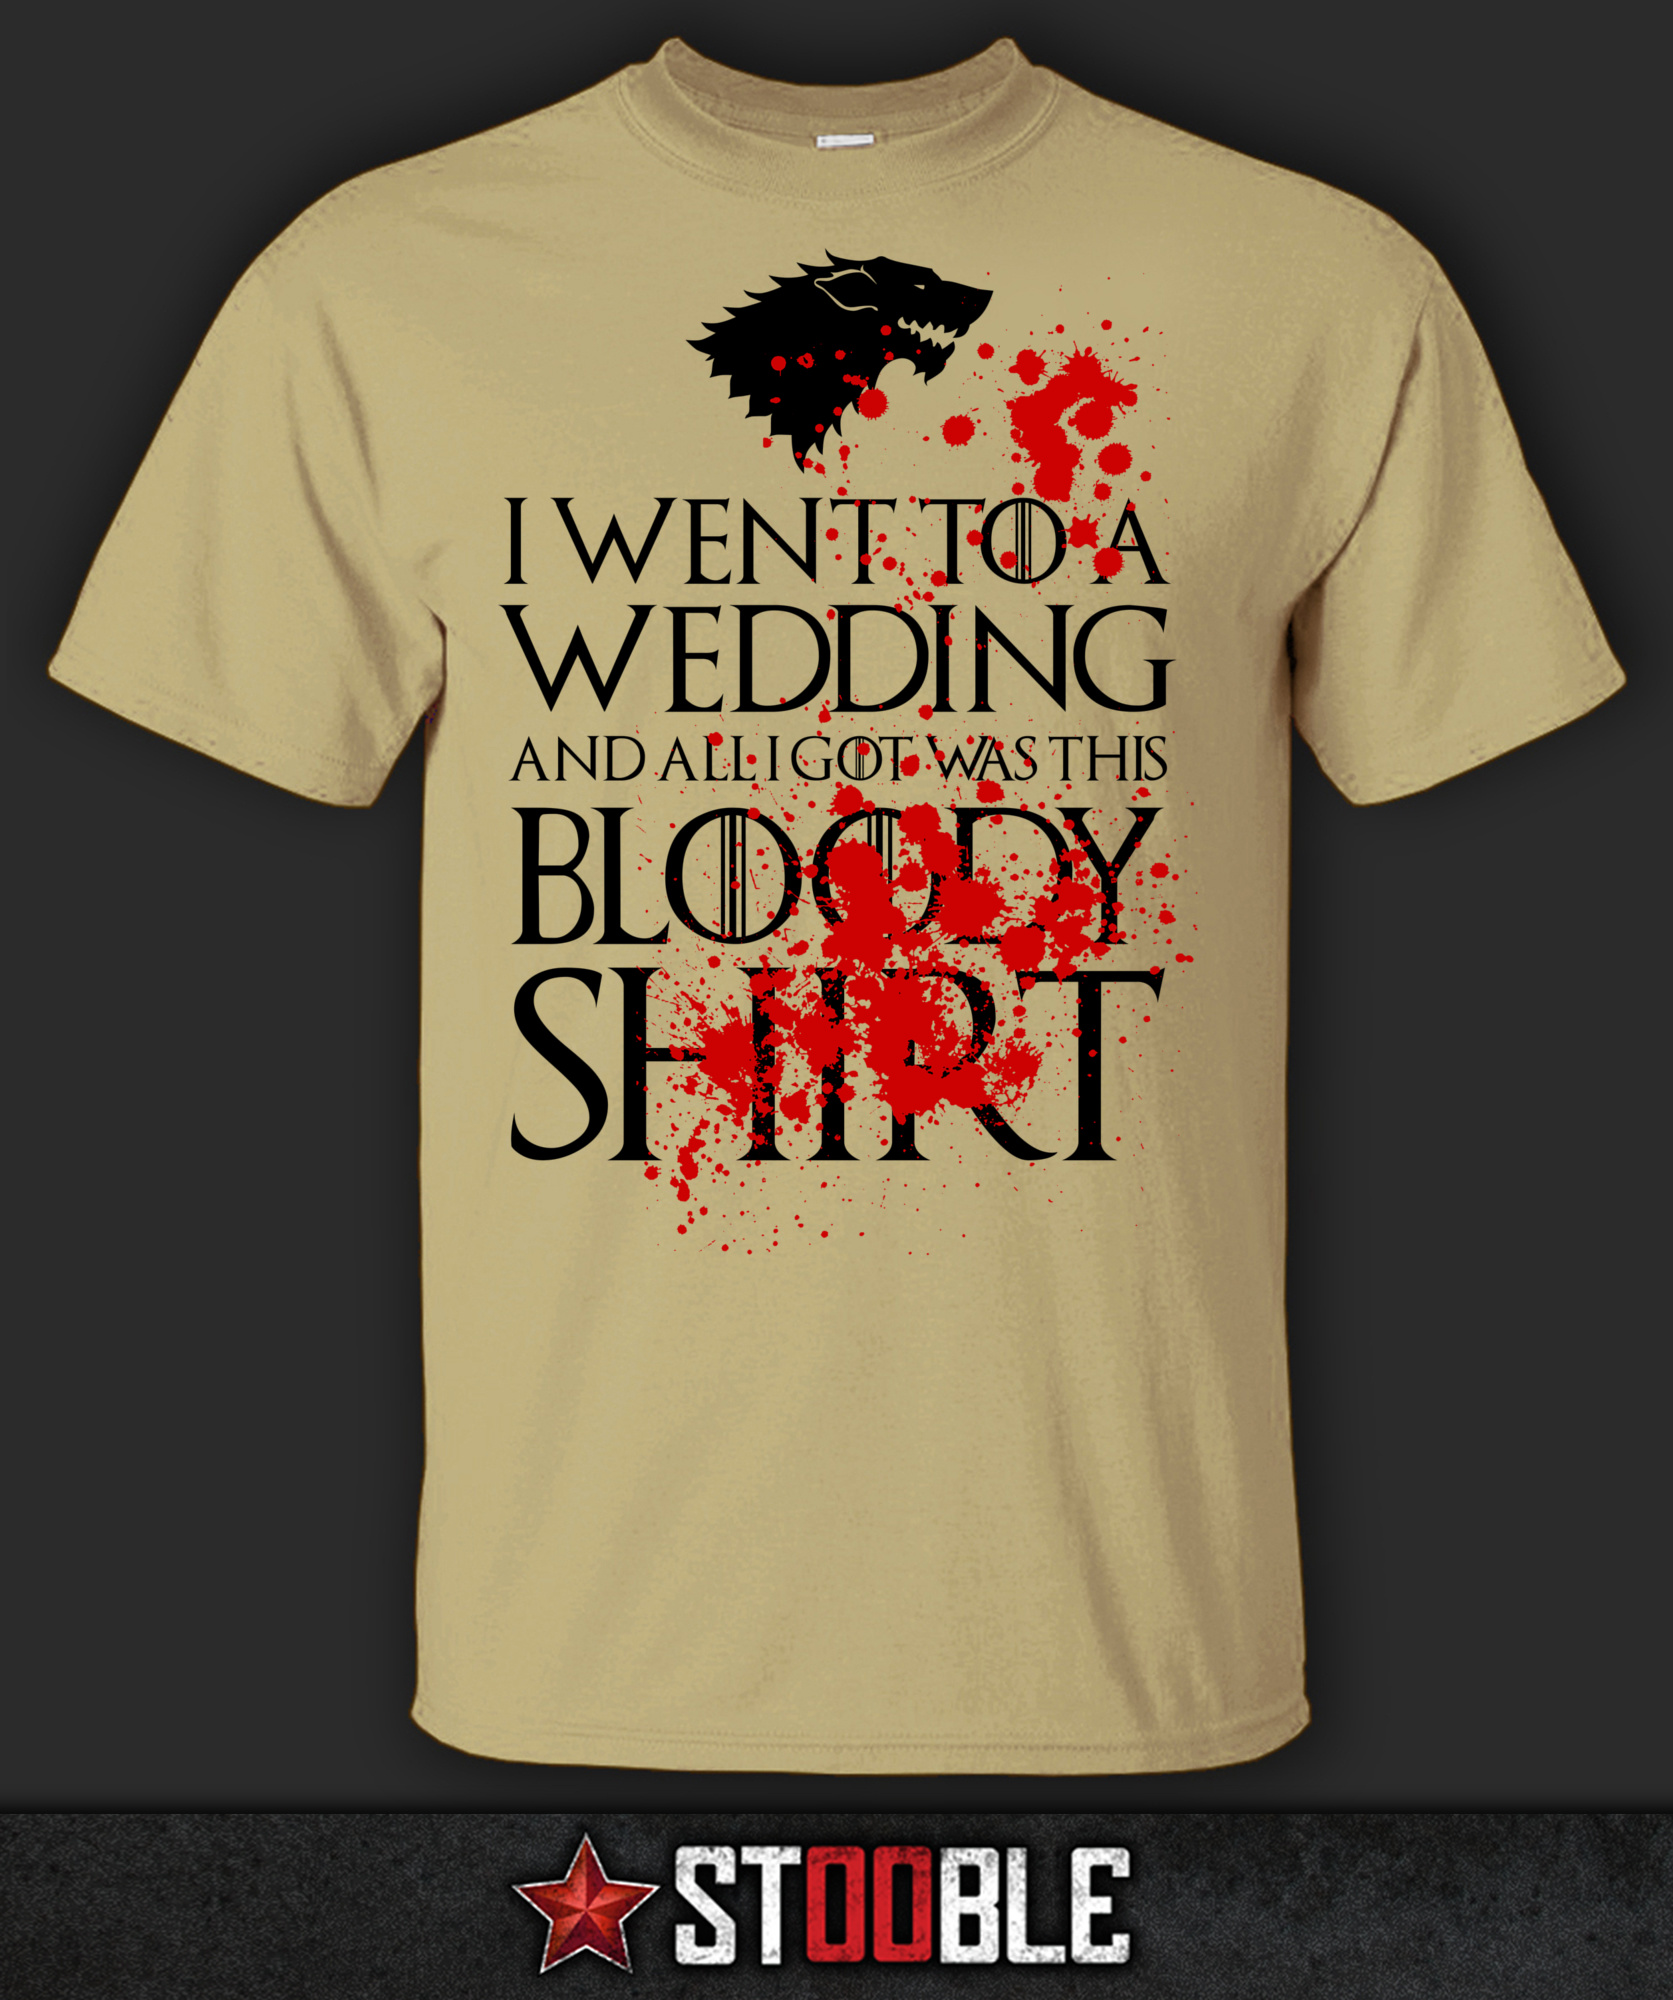 Red wedding t shirt new How to sell shirts